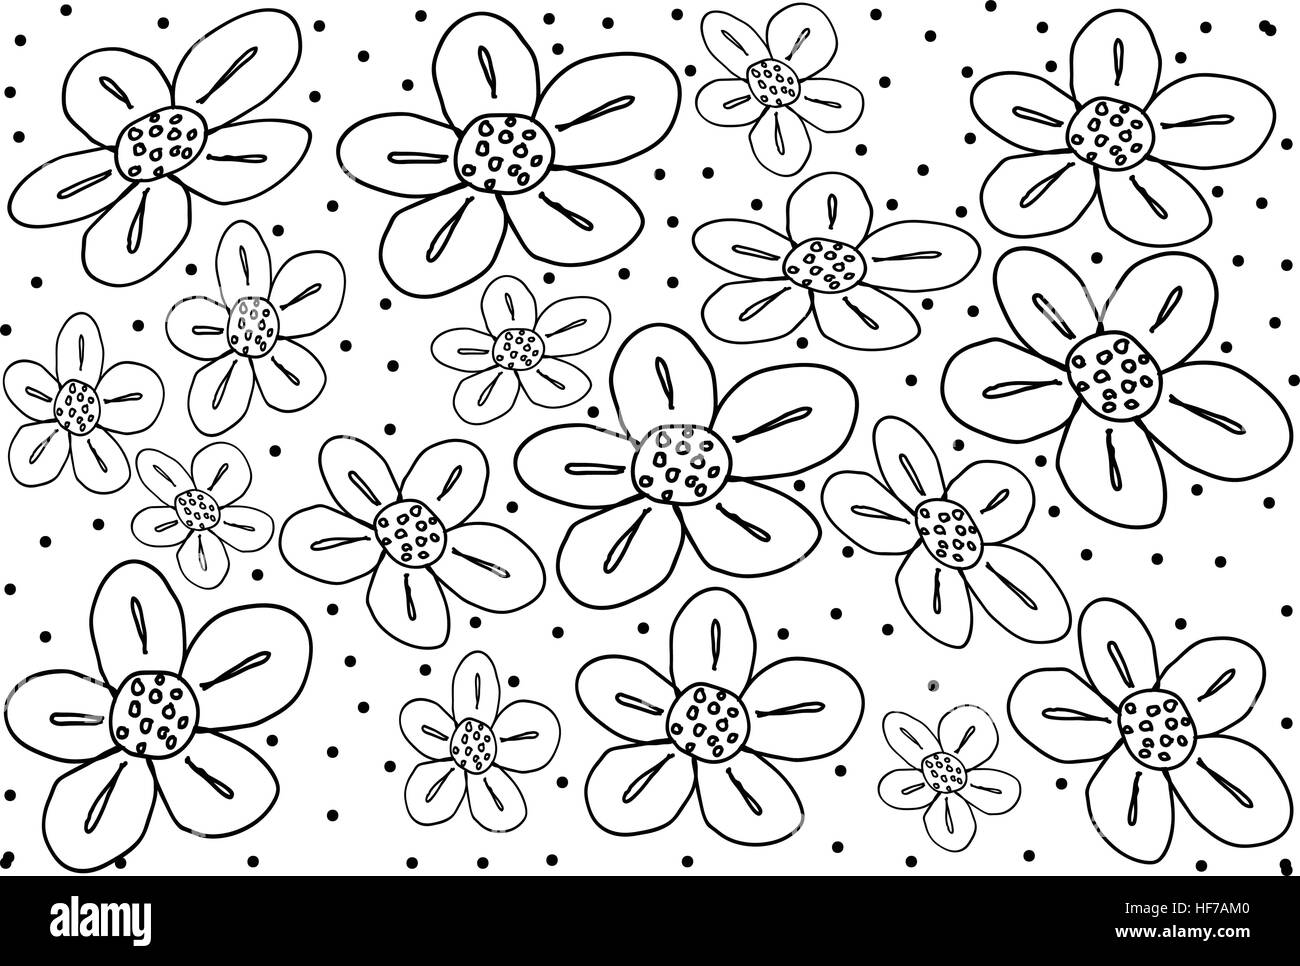 Thai Pattern Illustration Of Beautiful White Vintage Texture Wallpaper Background With Black Flower For Add Content Or Picture